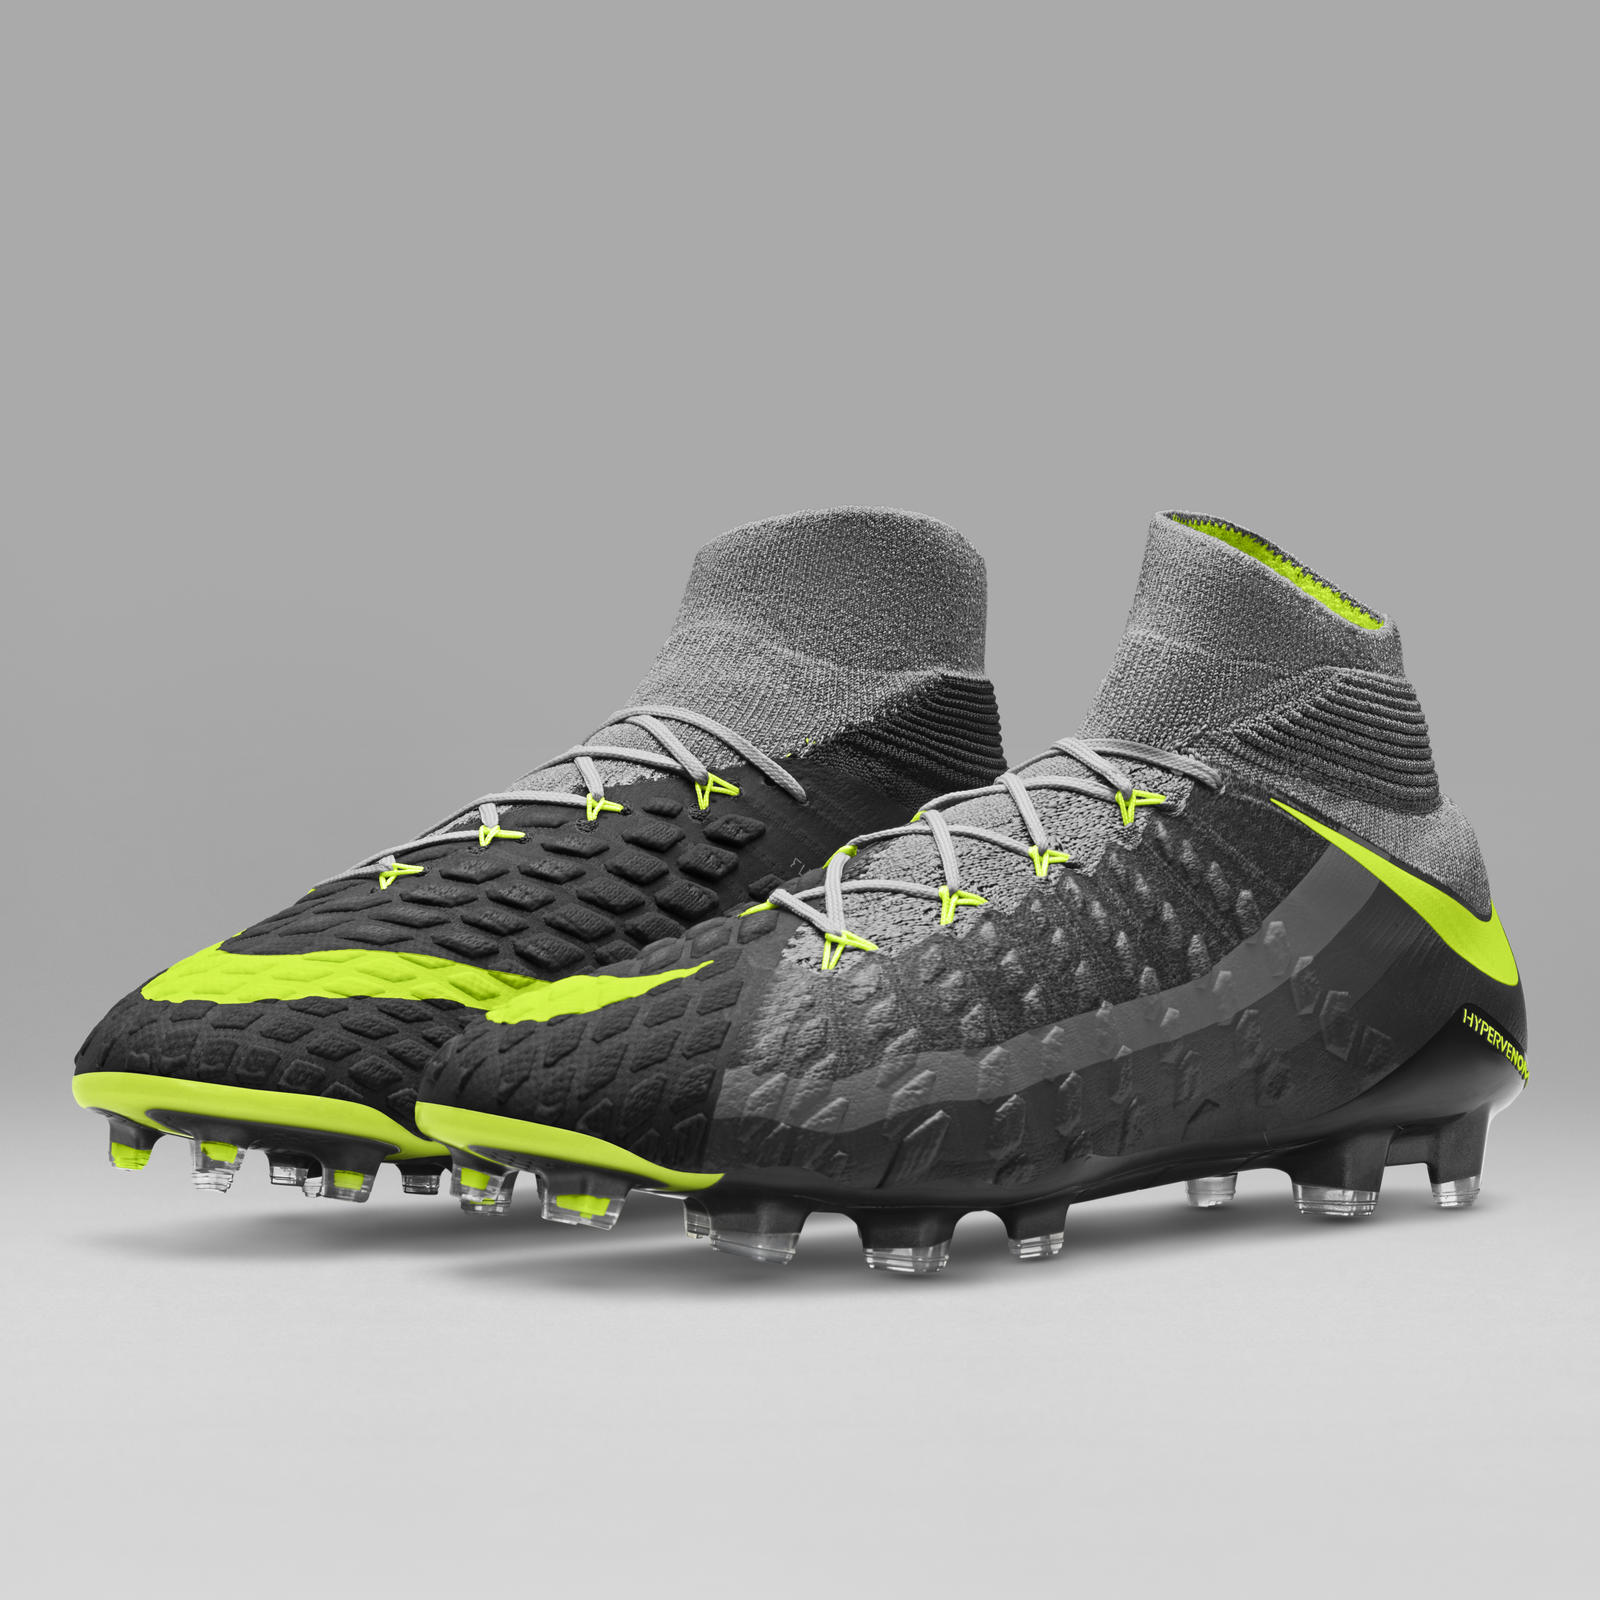 242f6154b22f ... ireland nike football boots inspired by air max icons 89 1a458 839b6